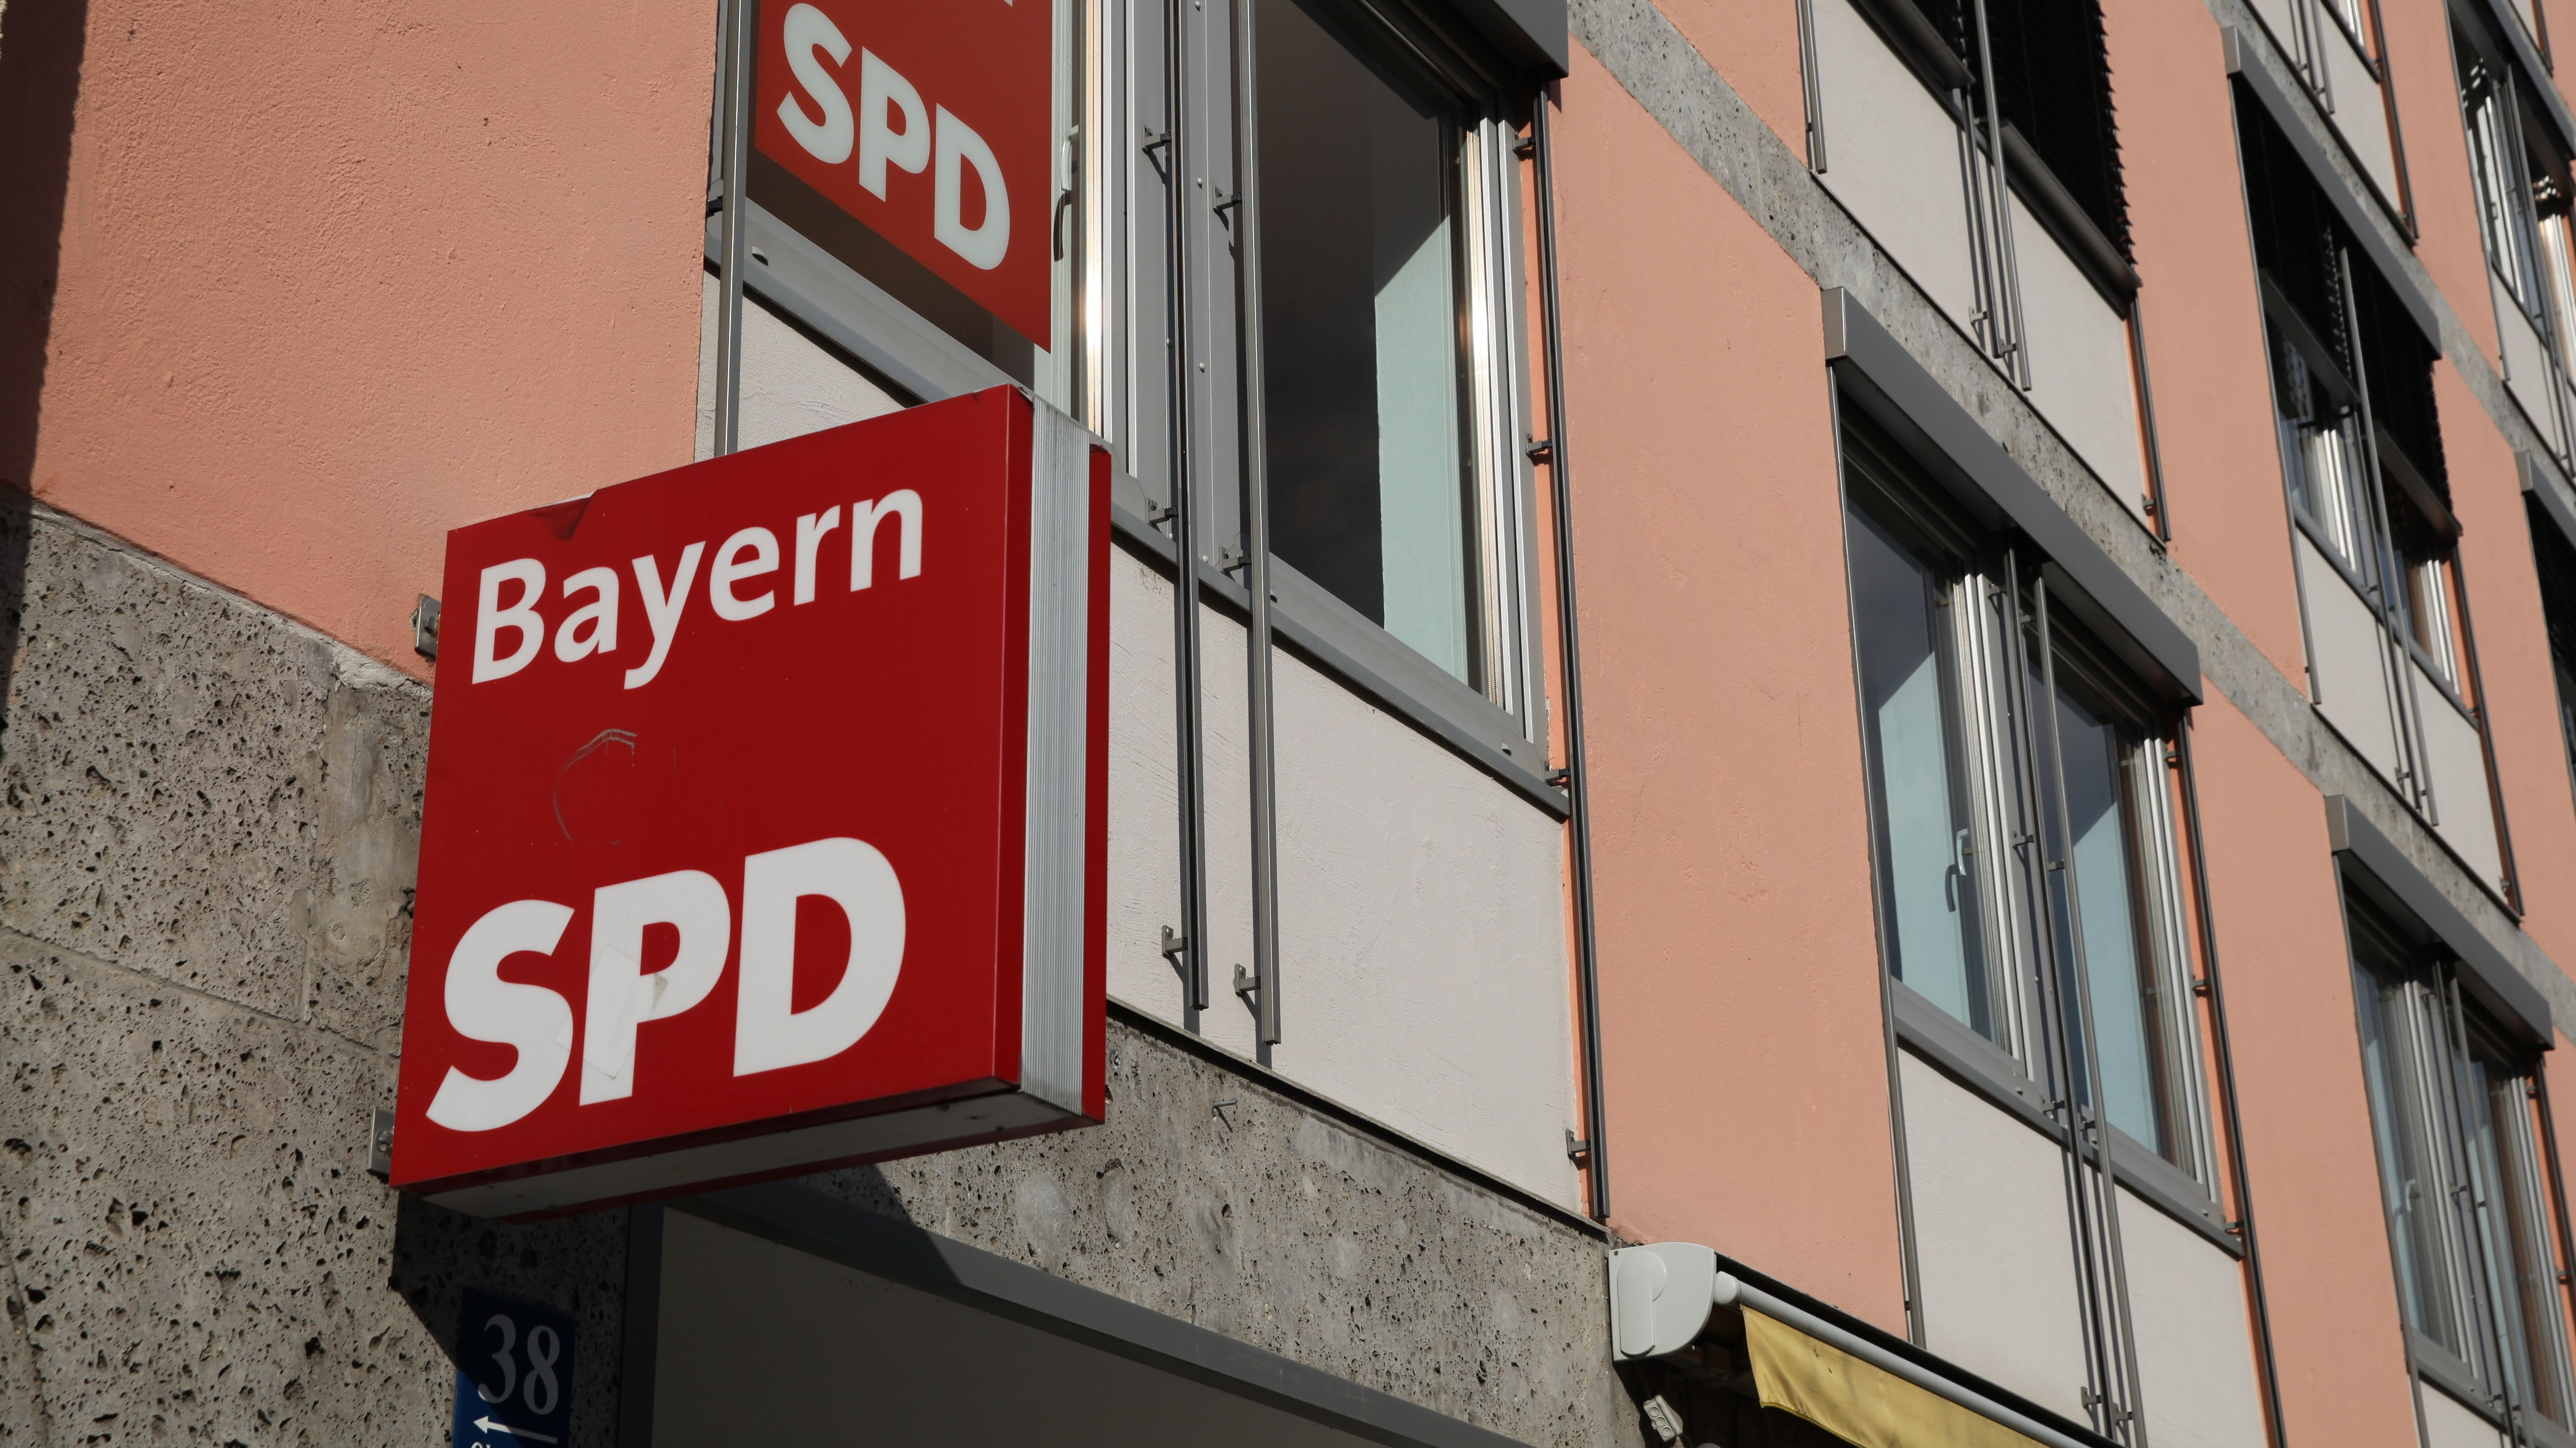 Die SPD-Landesgeschäftsstelle in München